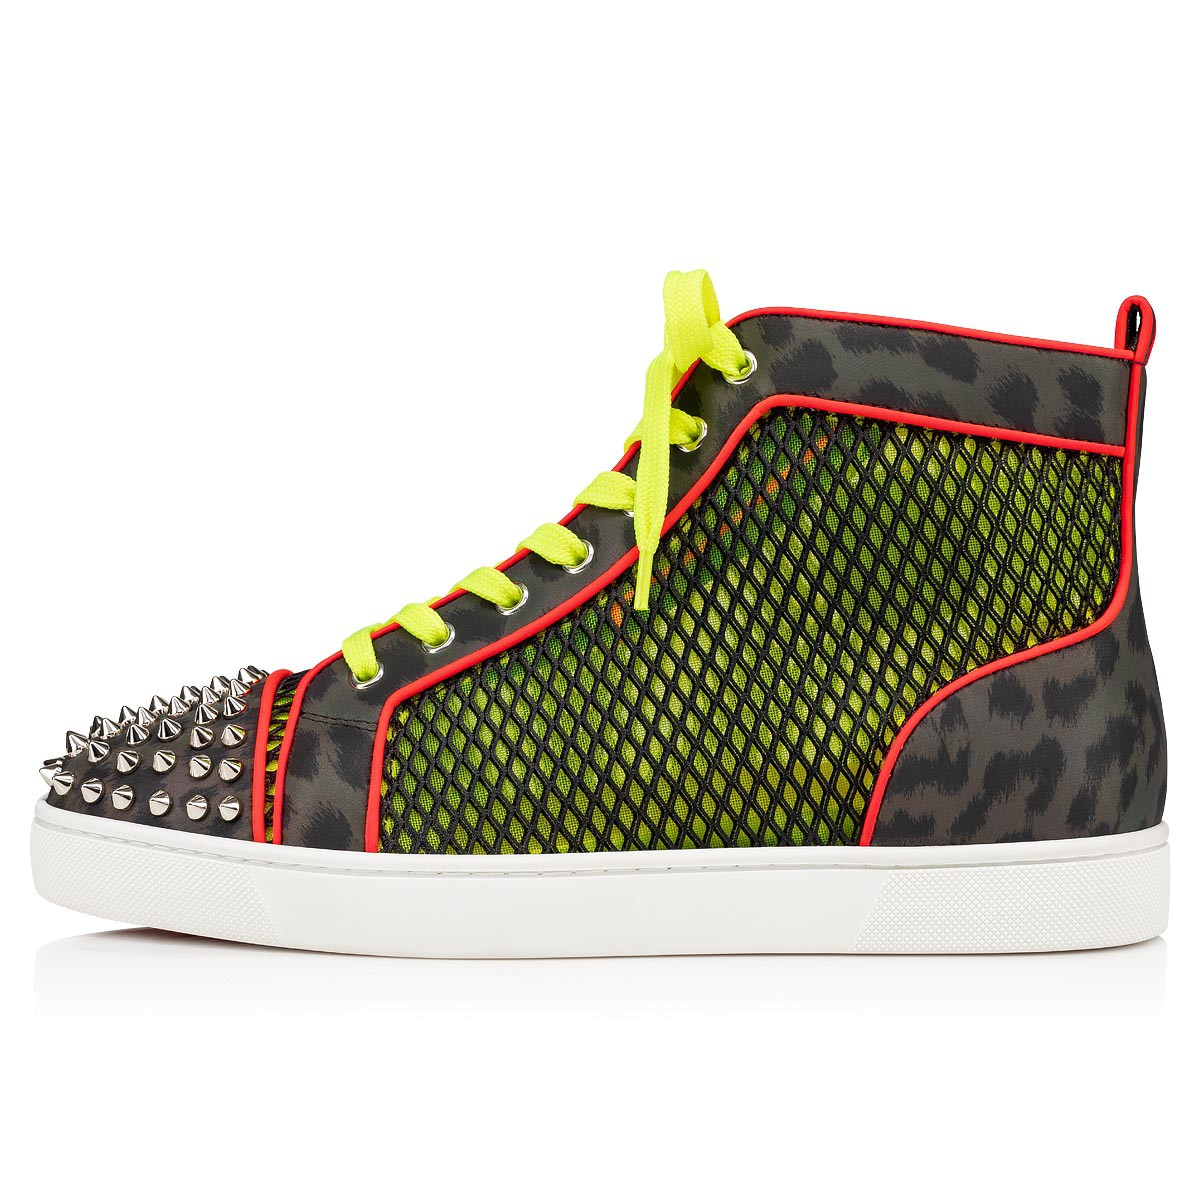 Shoes - Ac Lou Spikes Orlato Flat - Christian Louboutin